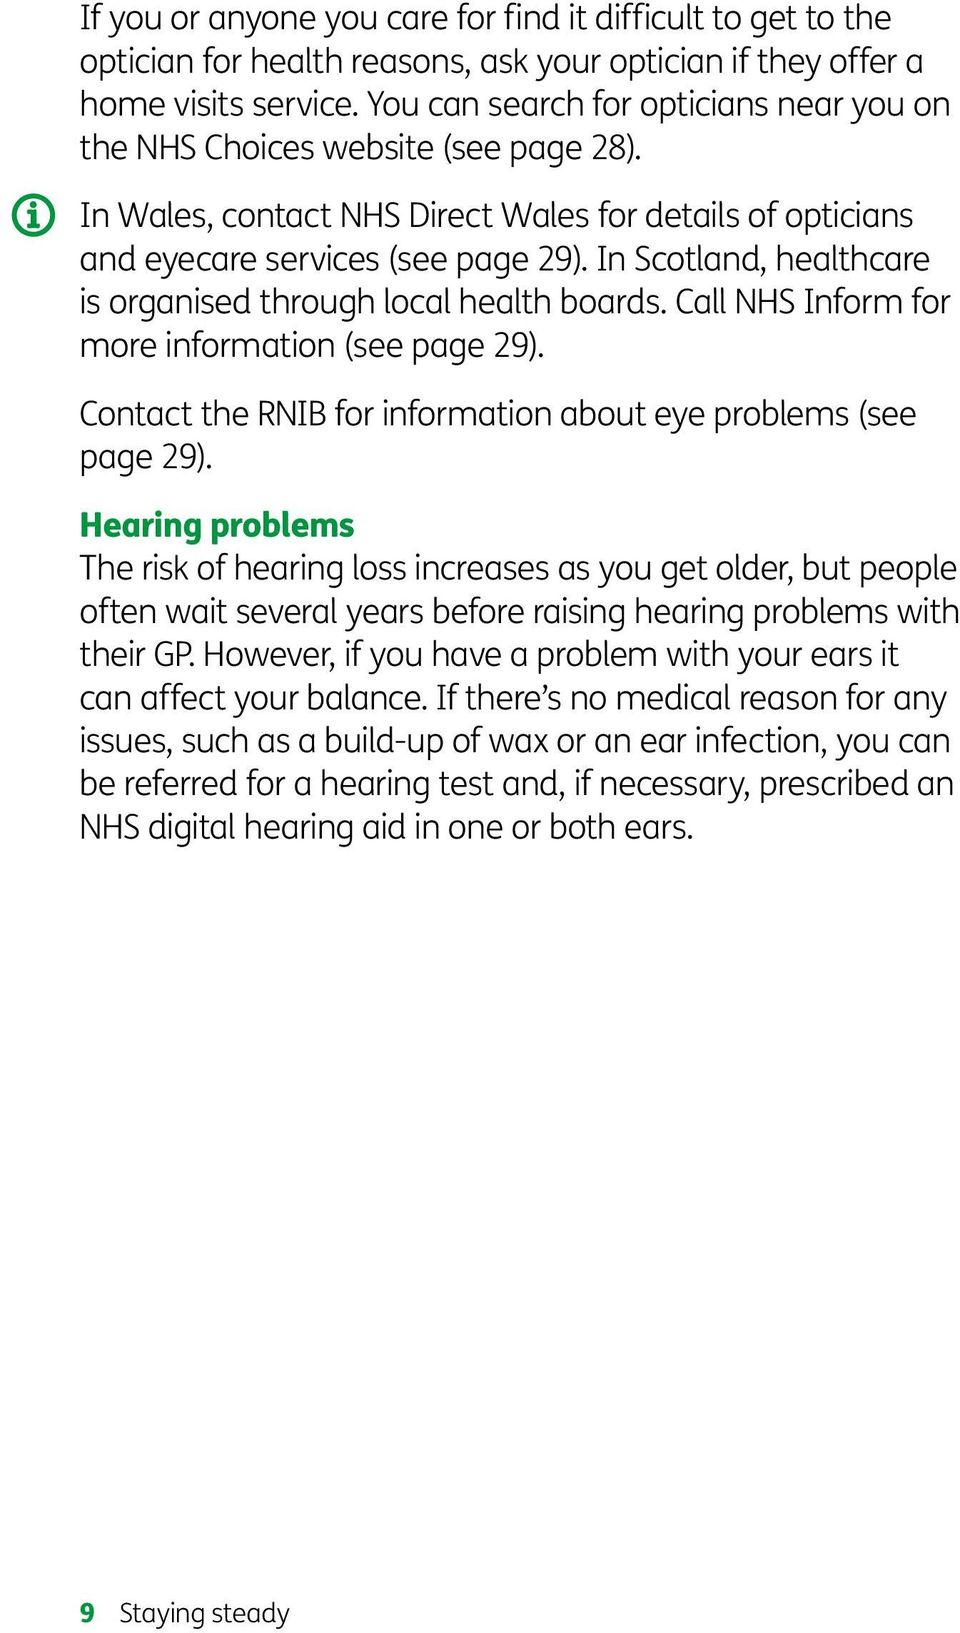 In Scotland, healthcare is organised through local health boards. Call NHS Inform for more information (see page 29). Contact the RNIB for information about eye problems (see page 29).